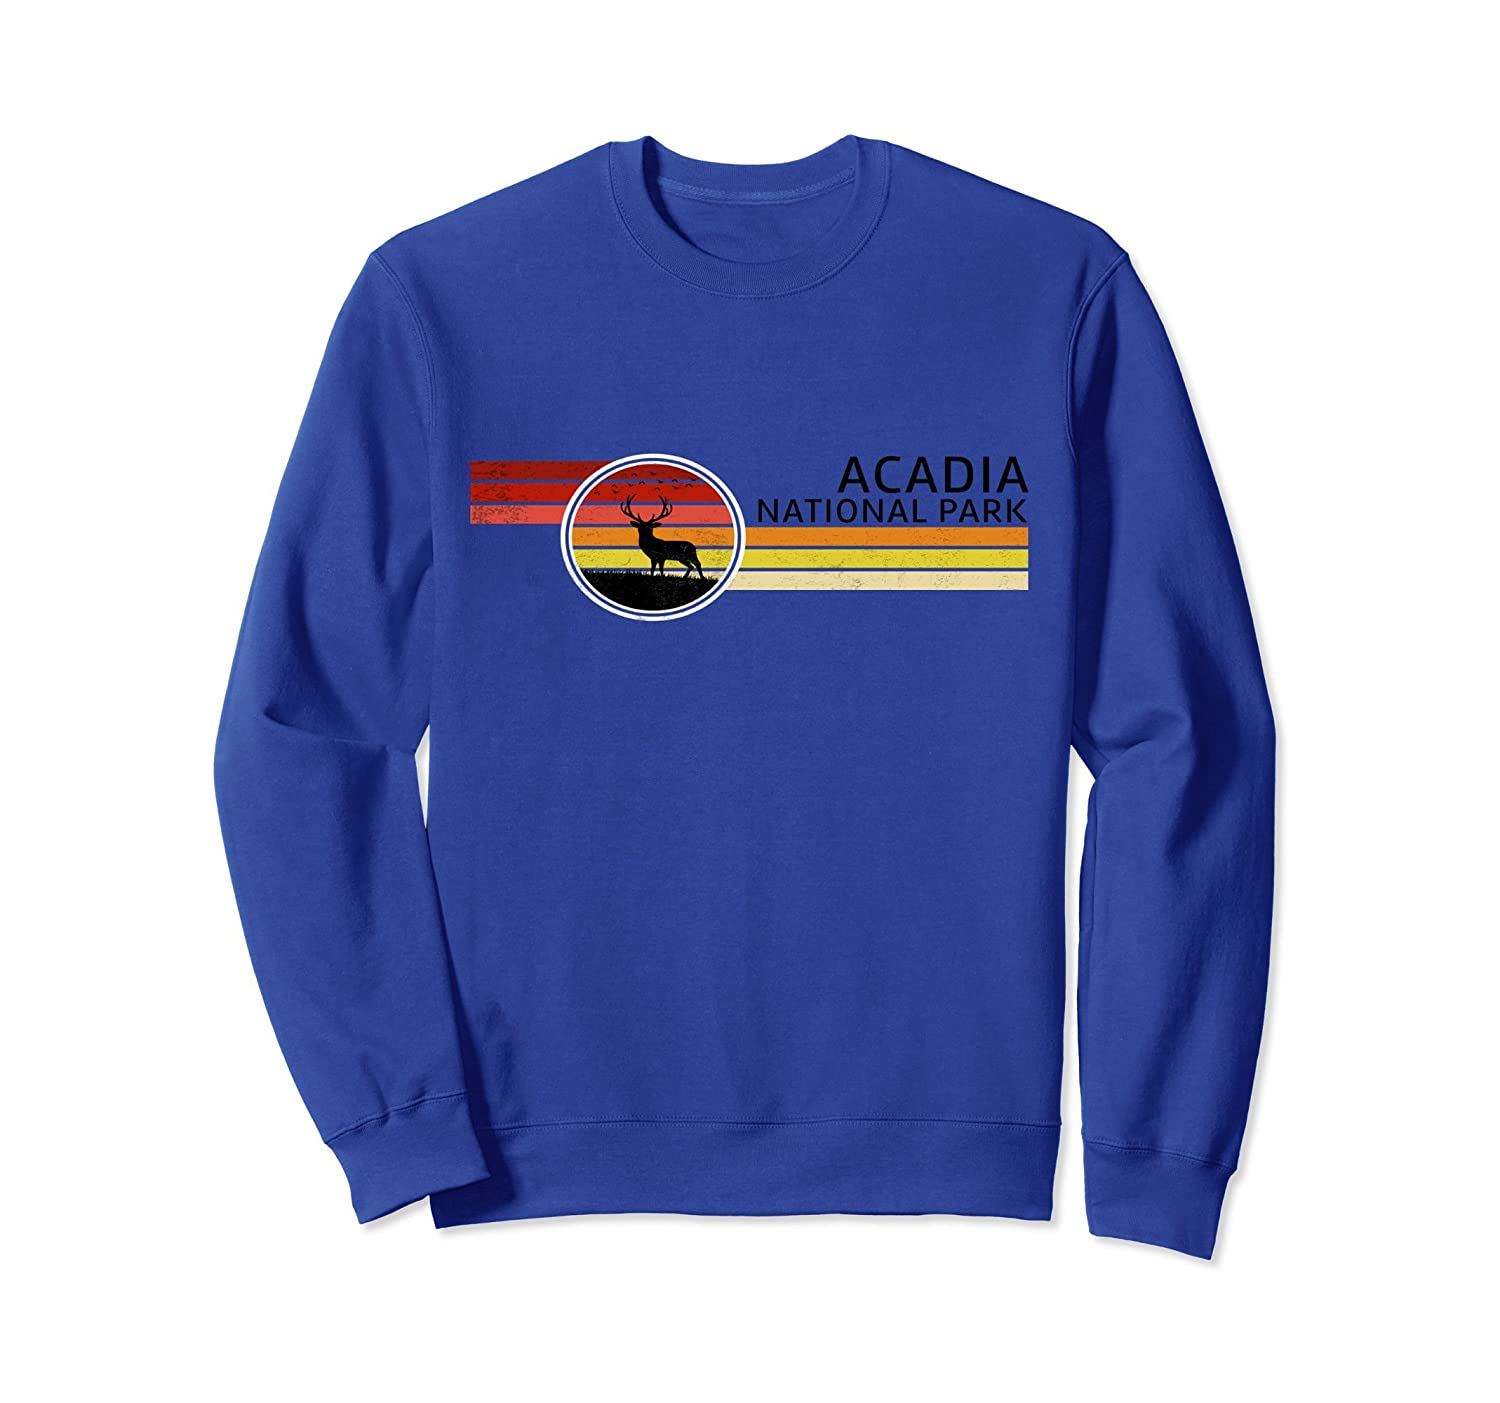 Acadia National Park Sweatshirt Warm Up Top Clothing Maine-ah my shirt one gift